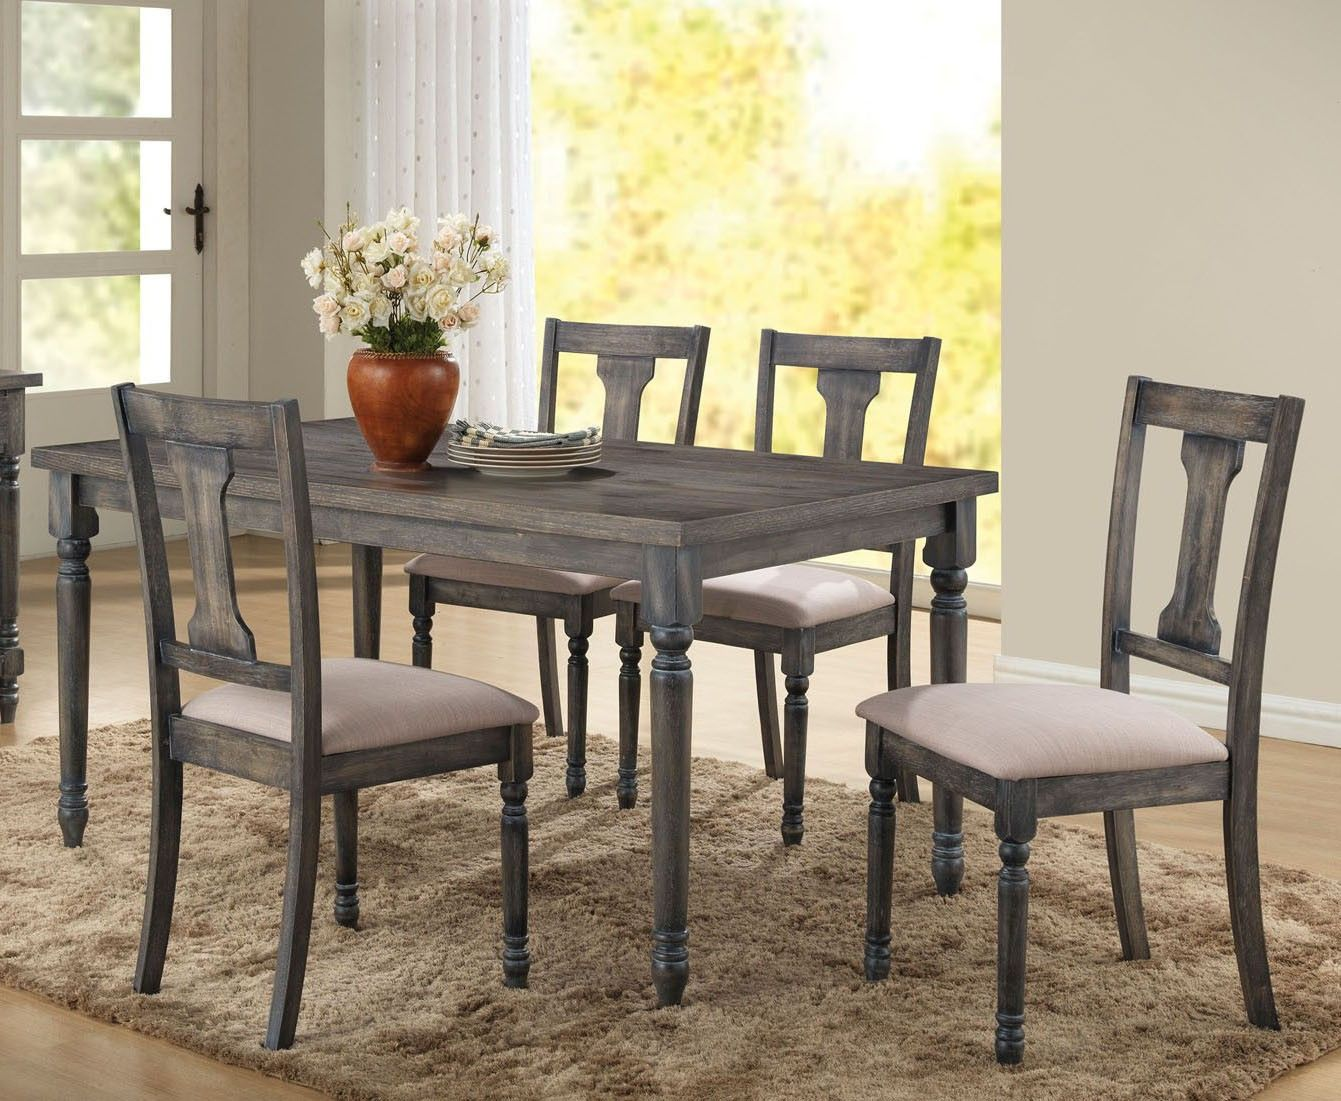 weathered wood dining table. Acme 71435 Wallace 5pcs Weathered Blue Washed Wood Dining Table Set